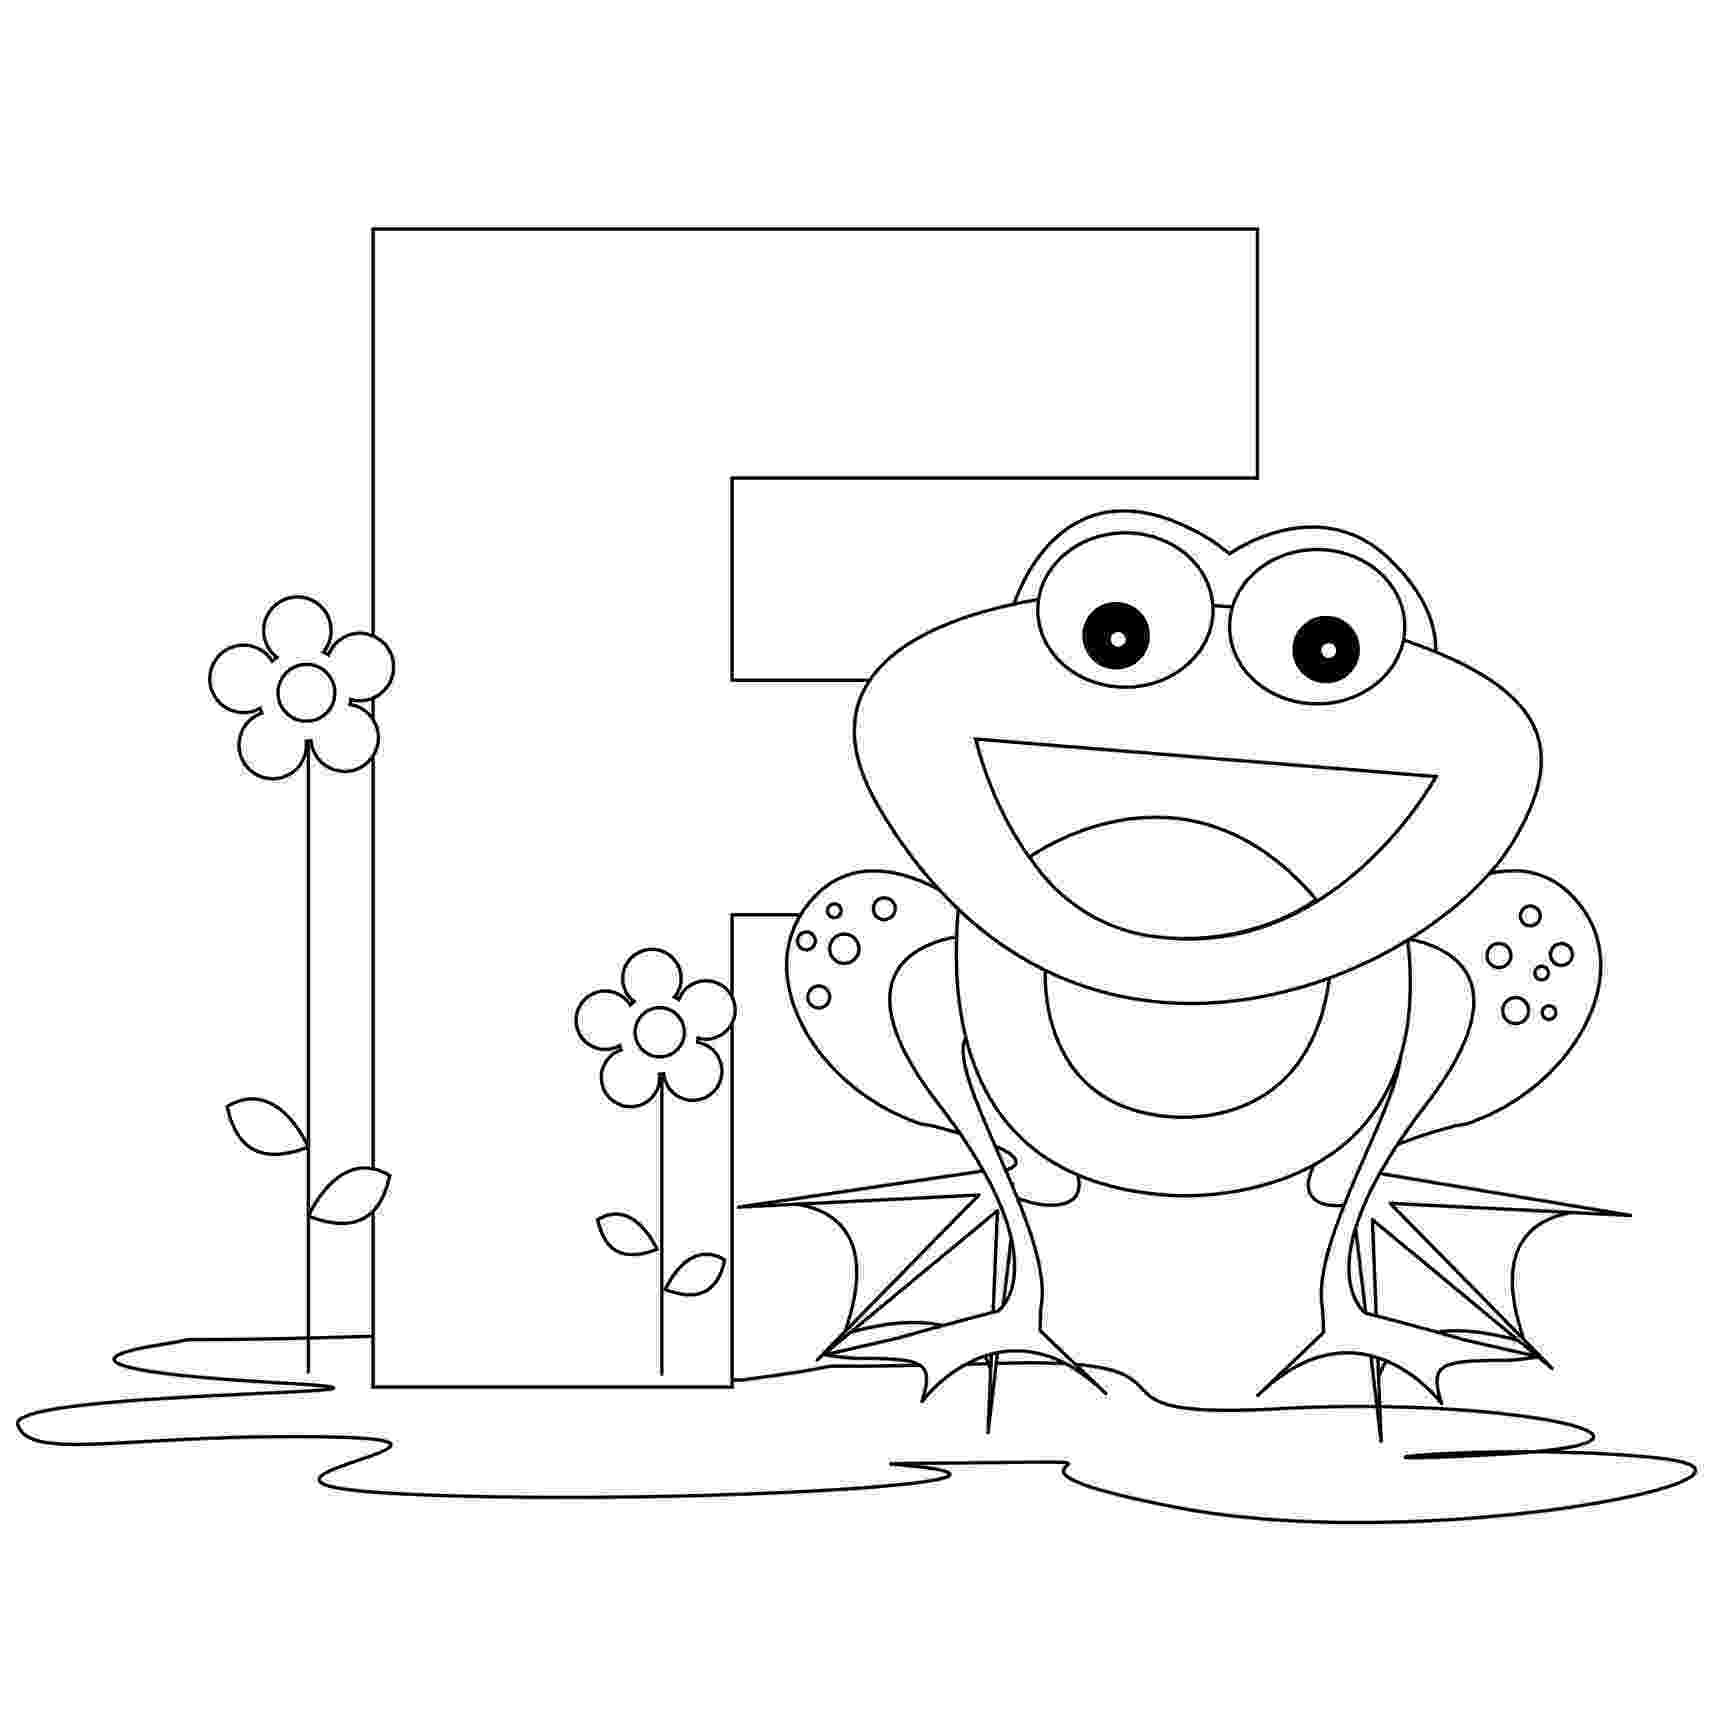 coloring pictures of alphabet letters free printable alphabet coloring pages for kids best of alphabet letters coloring pictures